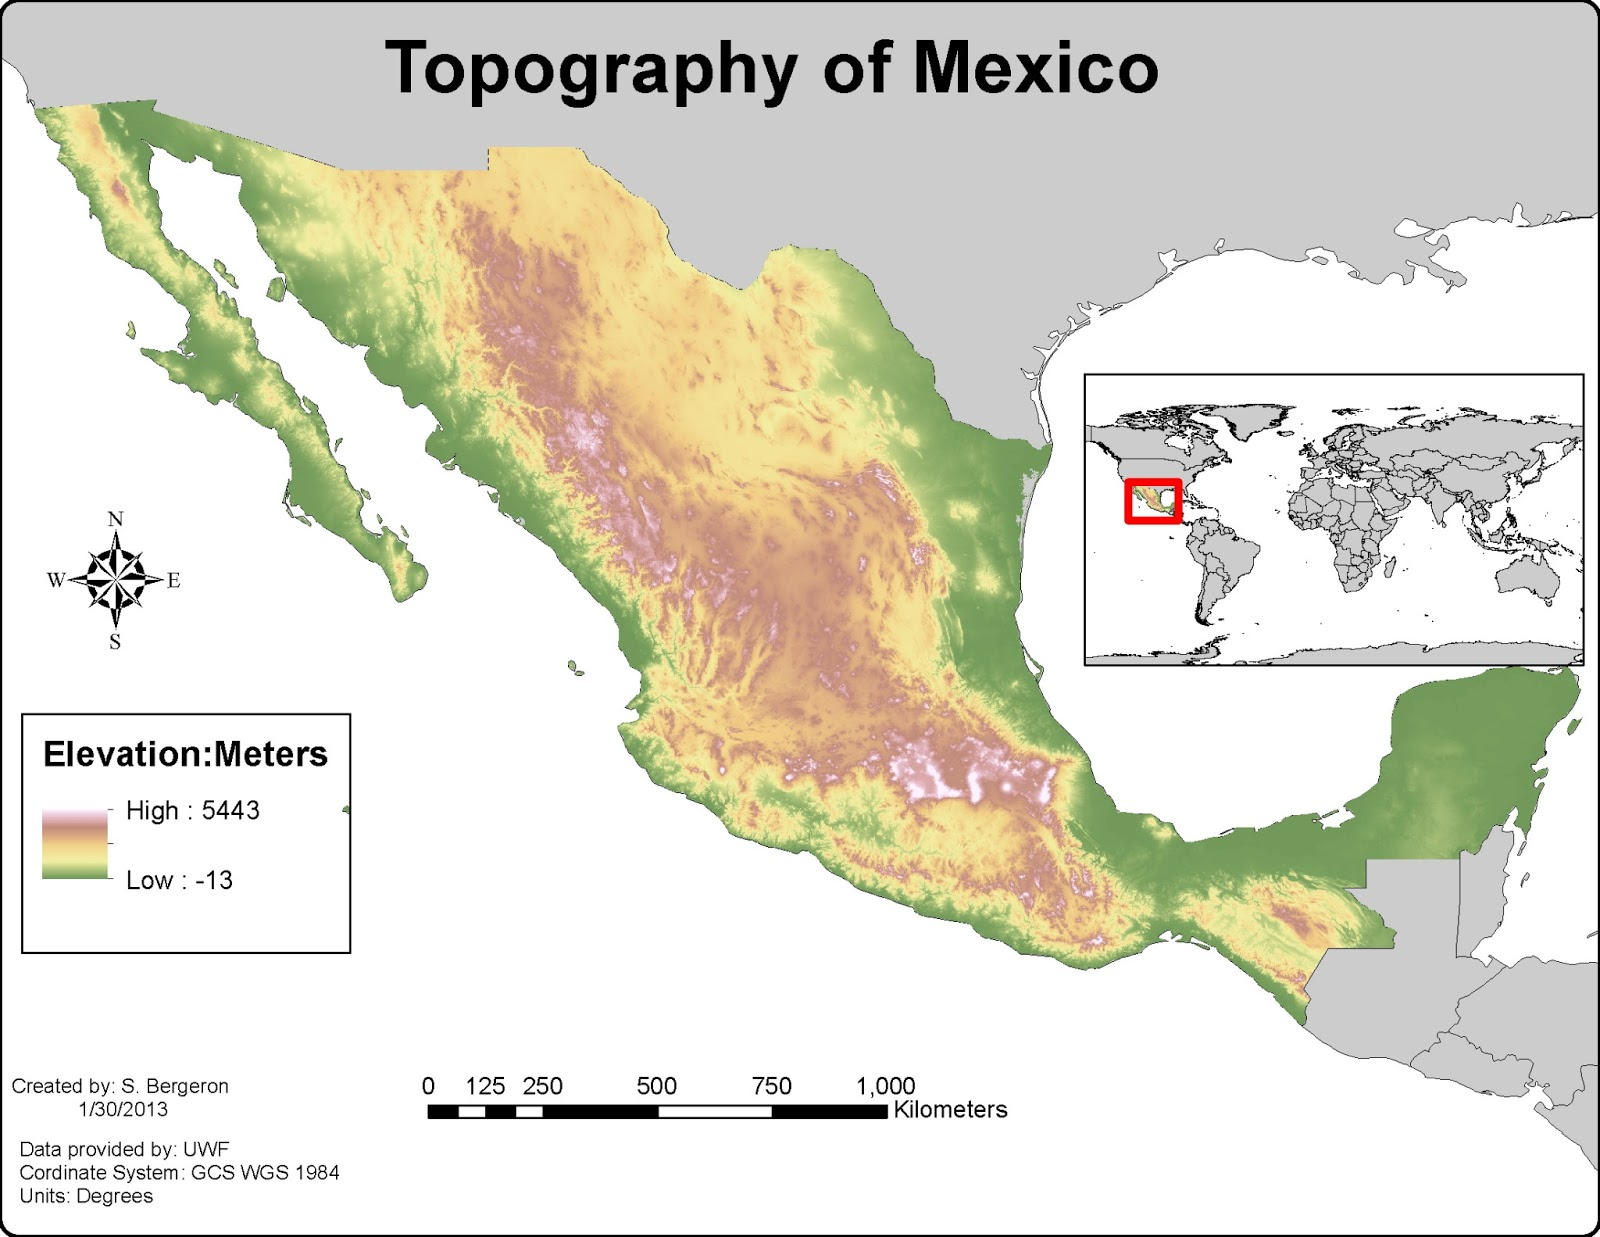 the last map for lab 3 depicts the topography of mexico in meters this map gave us our first opportunity to work with raster data in gis4043